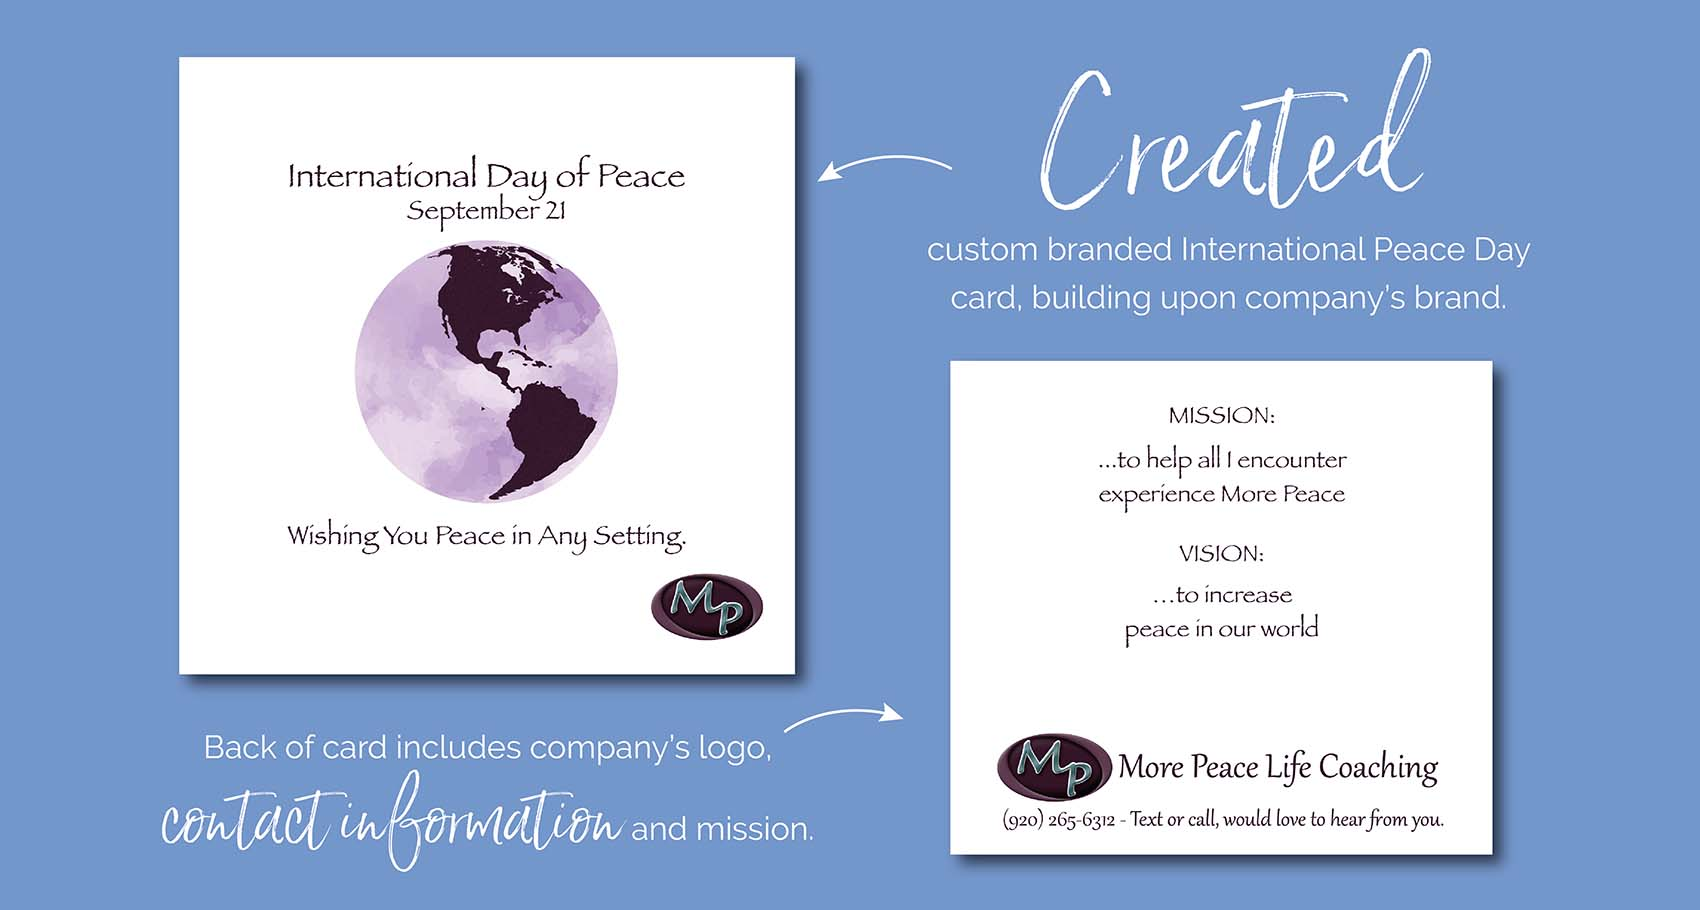 International Day of Peace Card Design by Eclectik Design